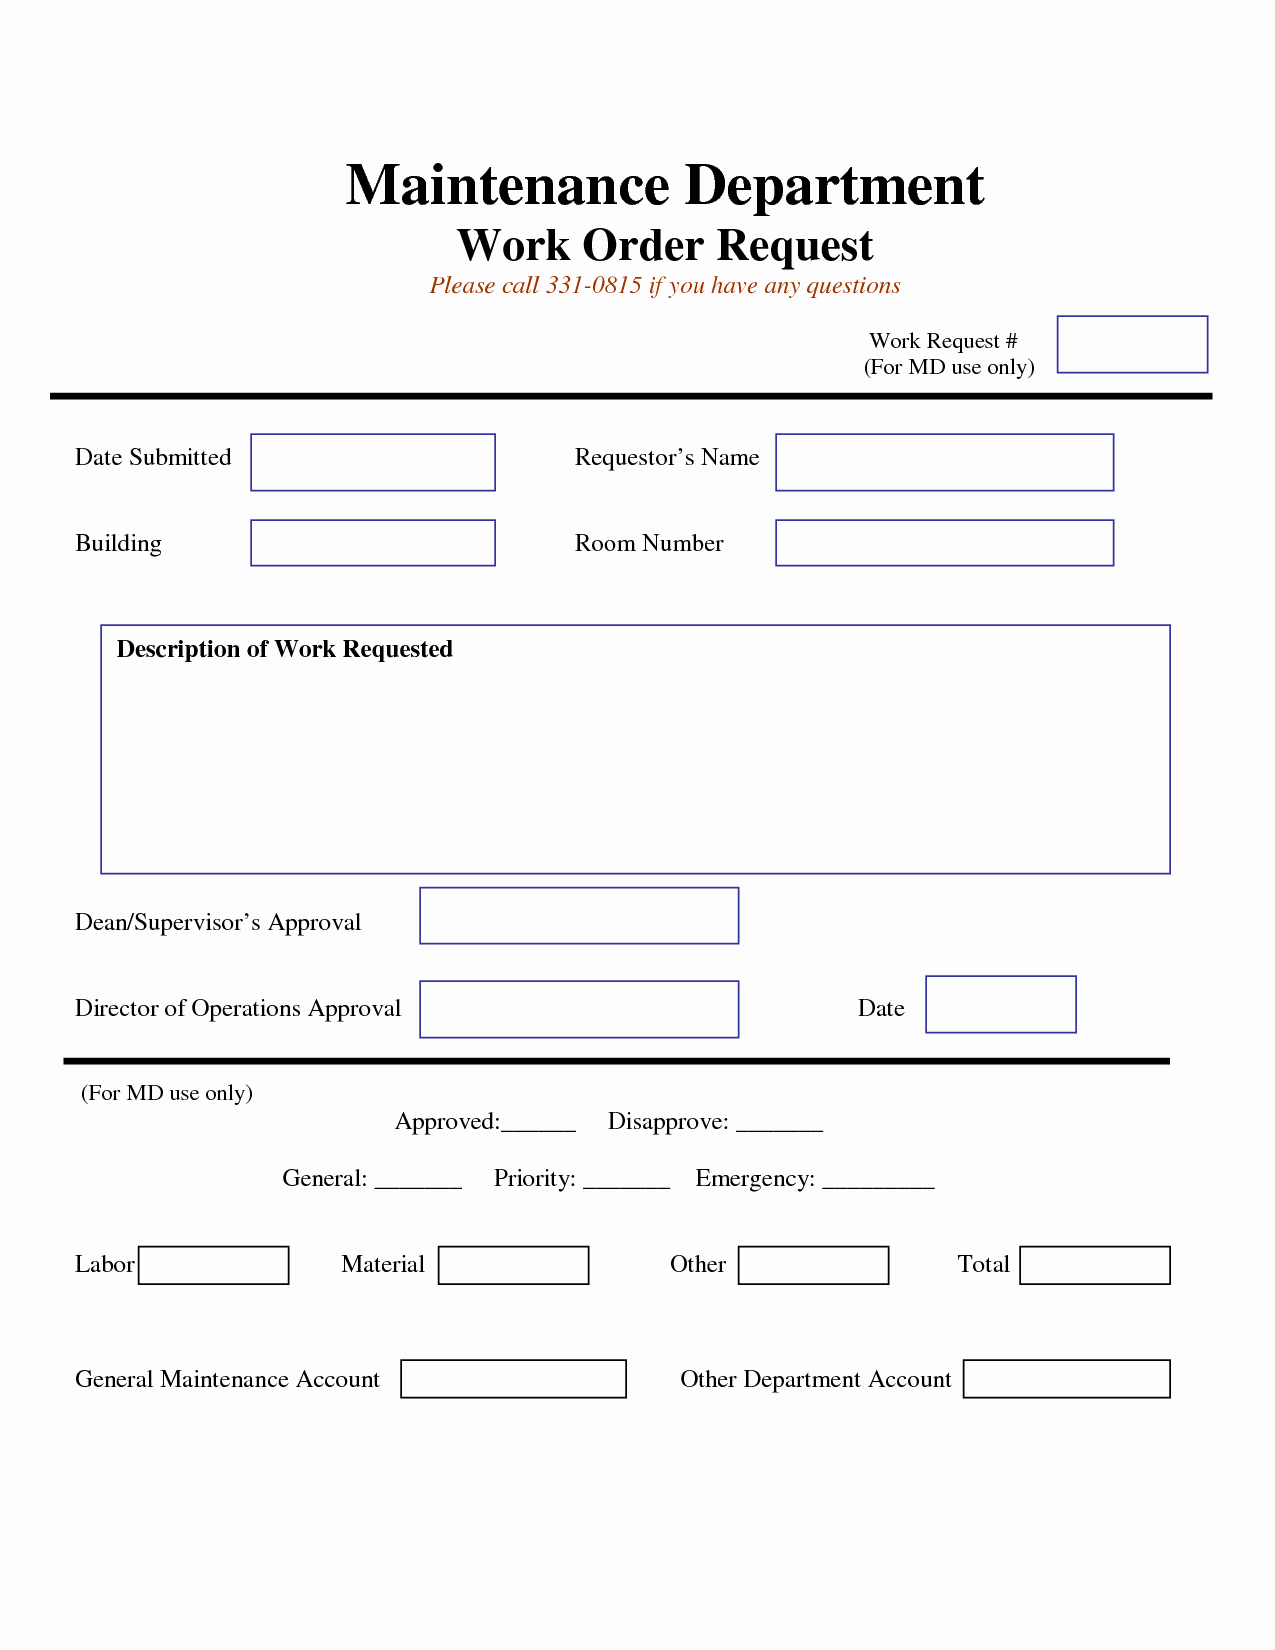 Tenant Maintenance Request form Template New Work Request form